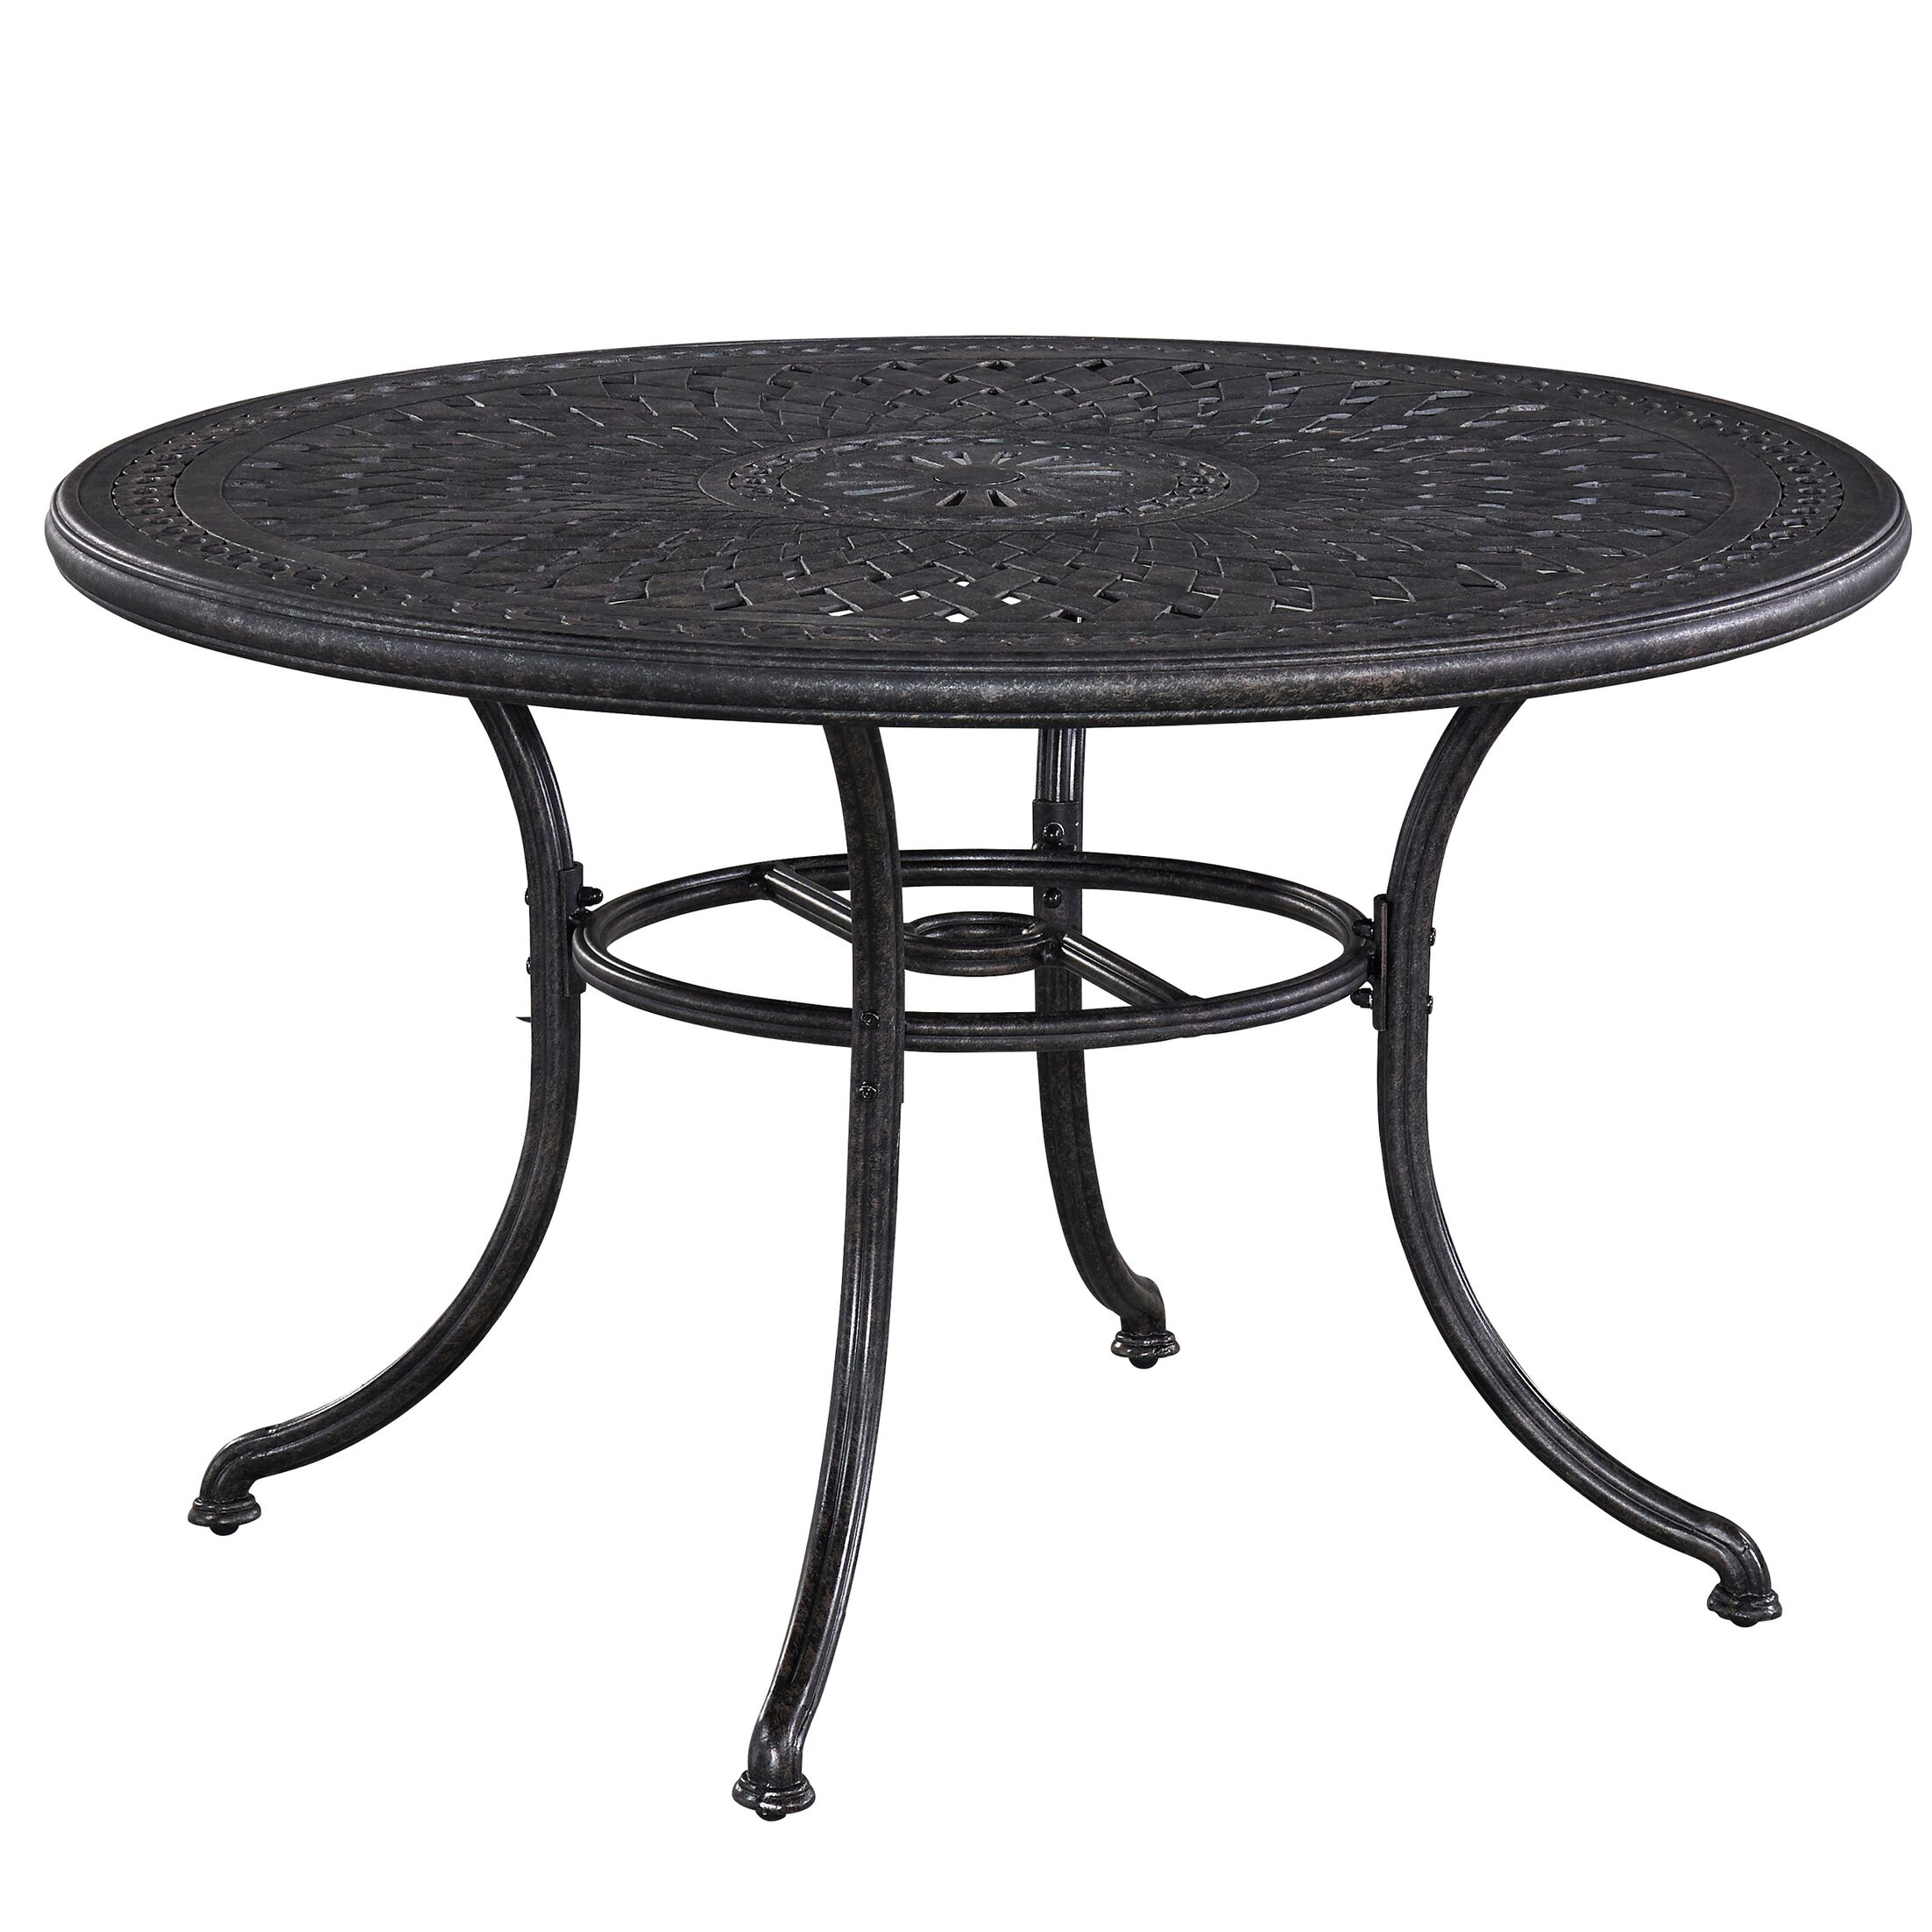 Lansdale Dining Table Table Size: 48